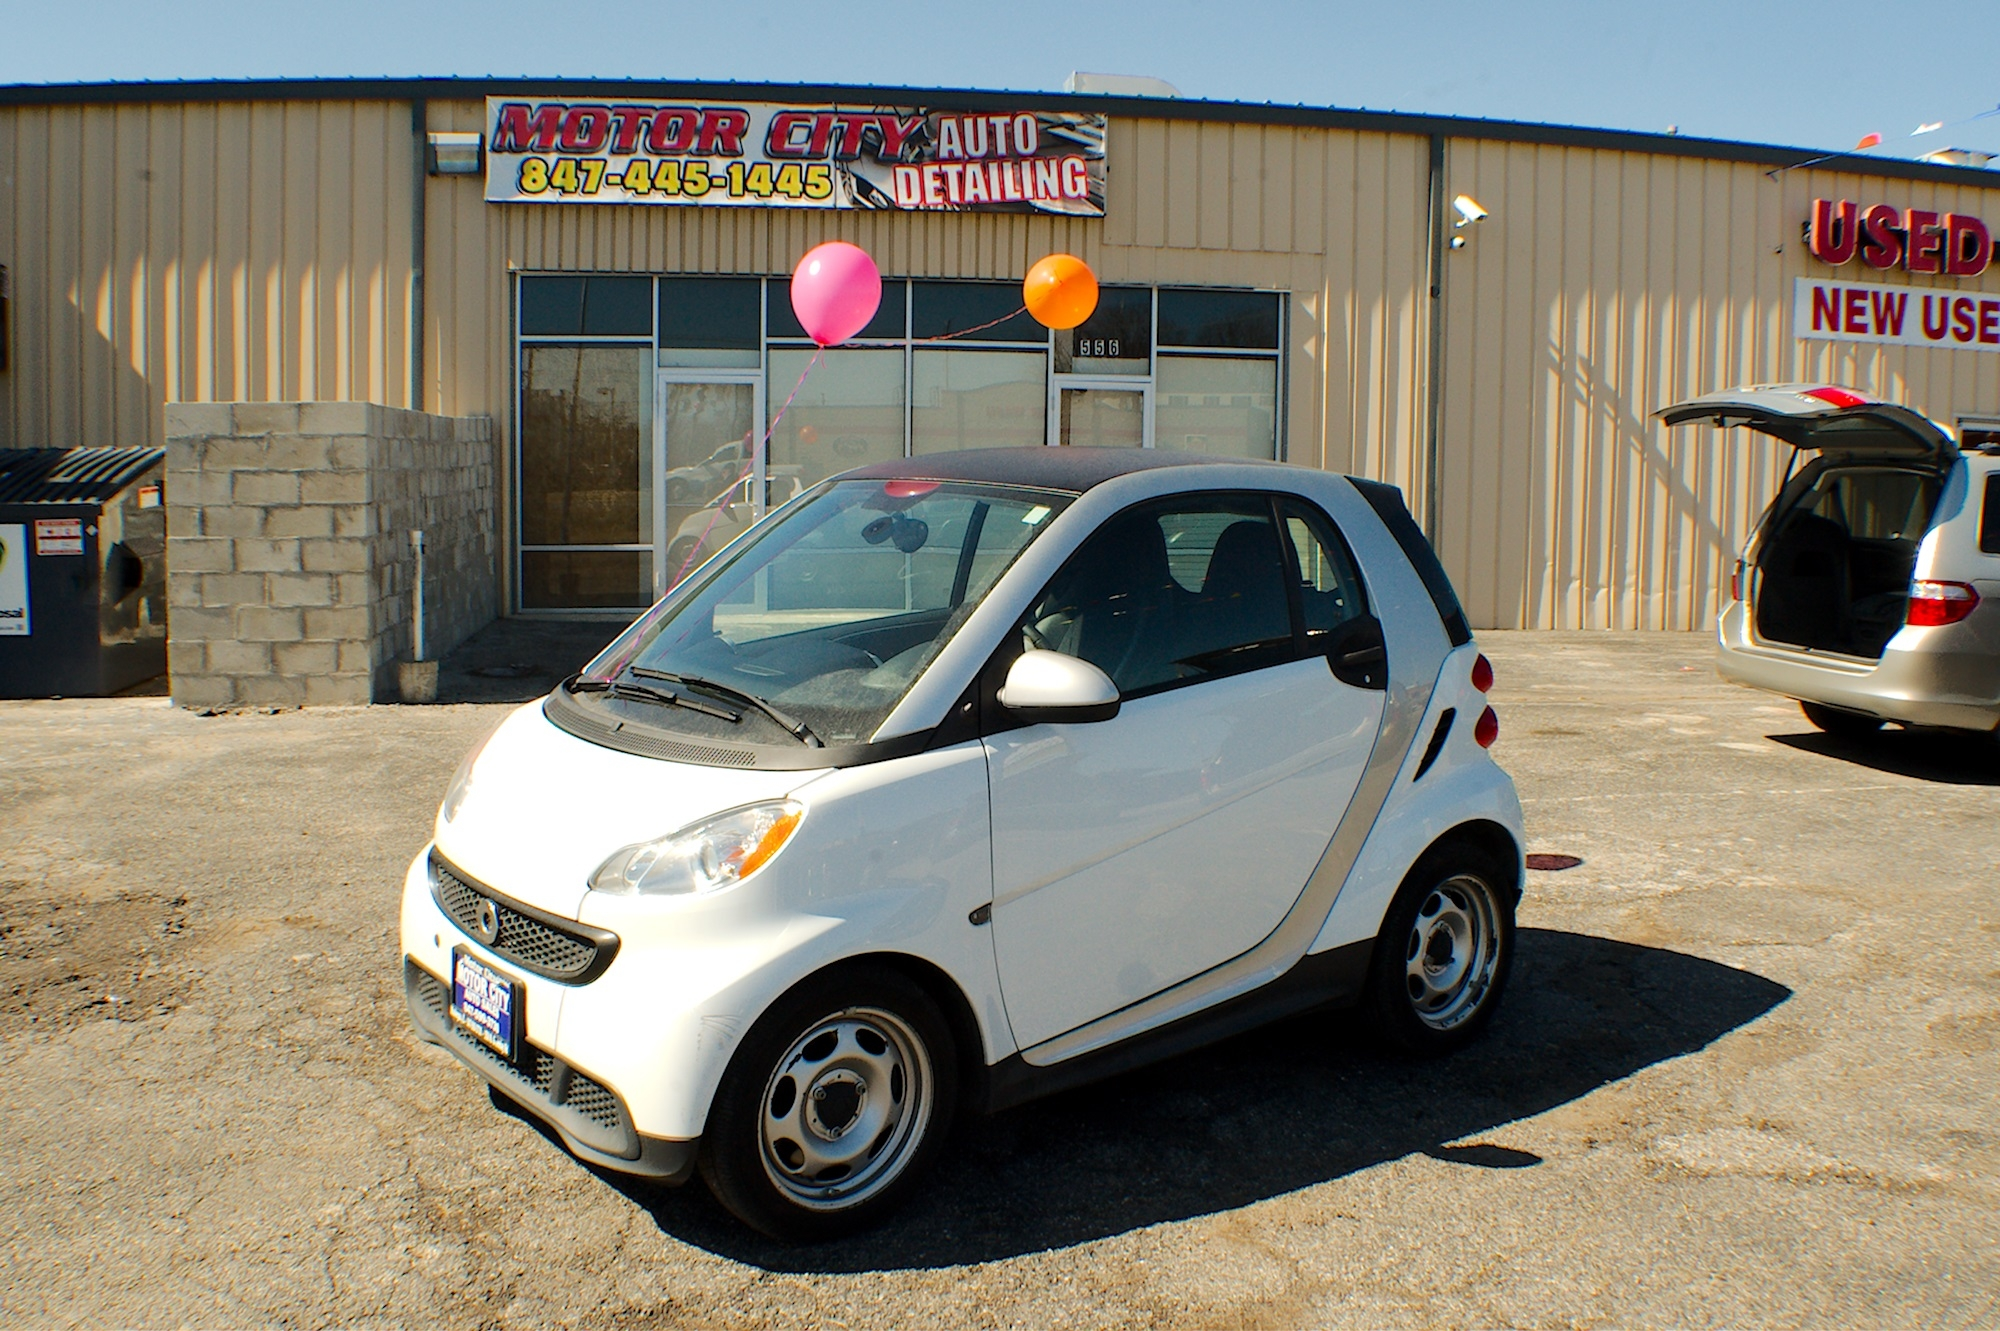 2013 smart car white coupe used car sale antioch zion waukegan lake county illinois